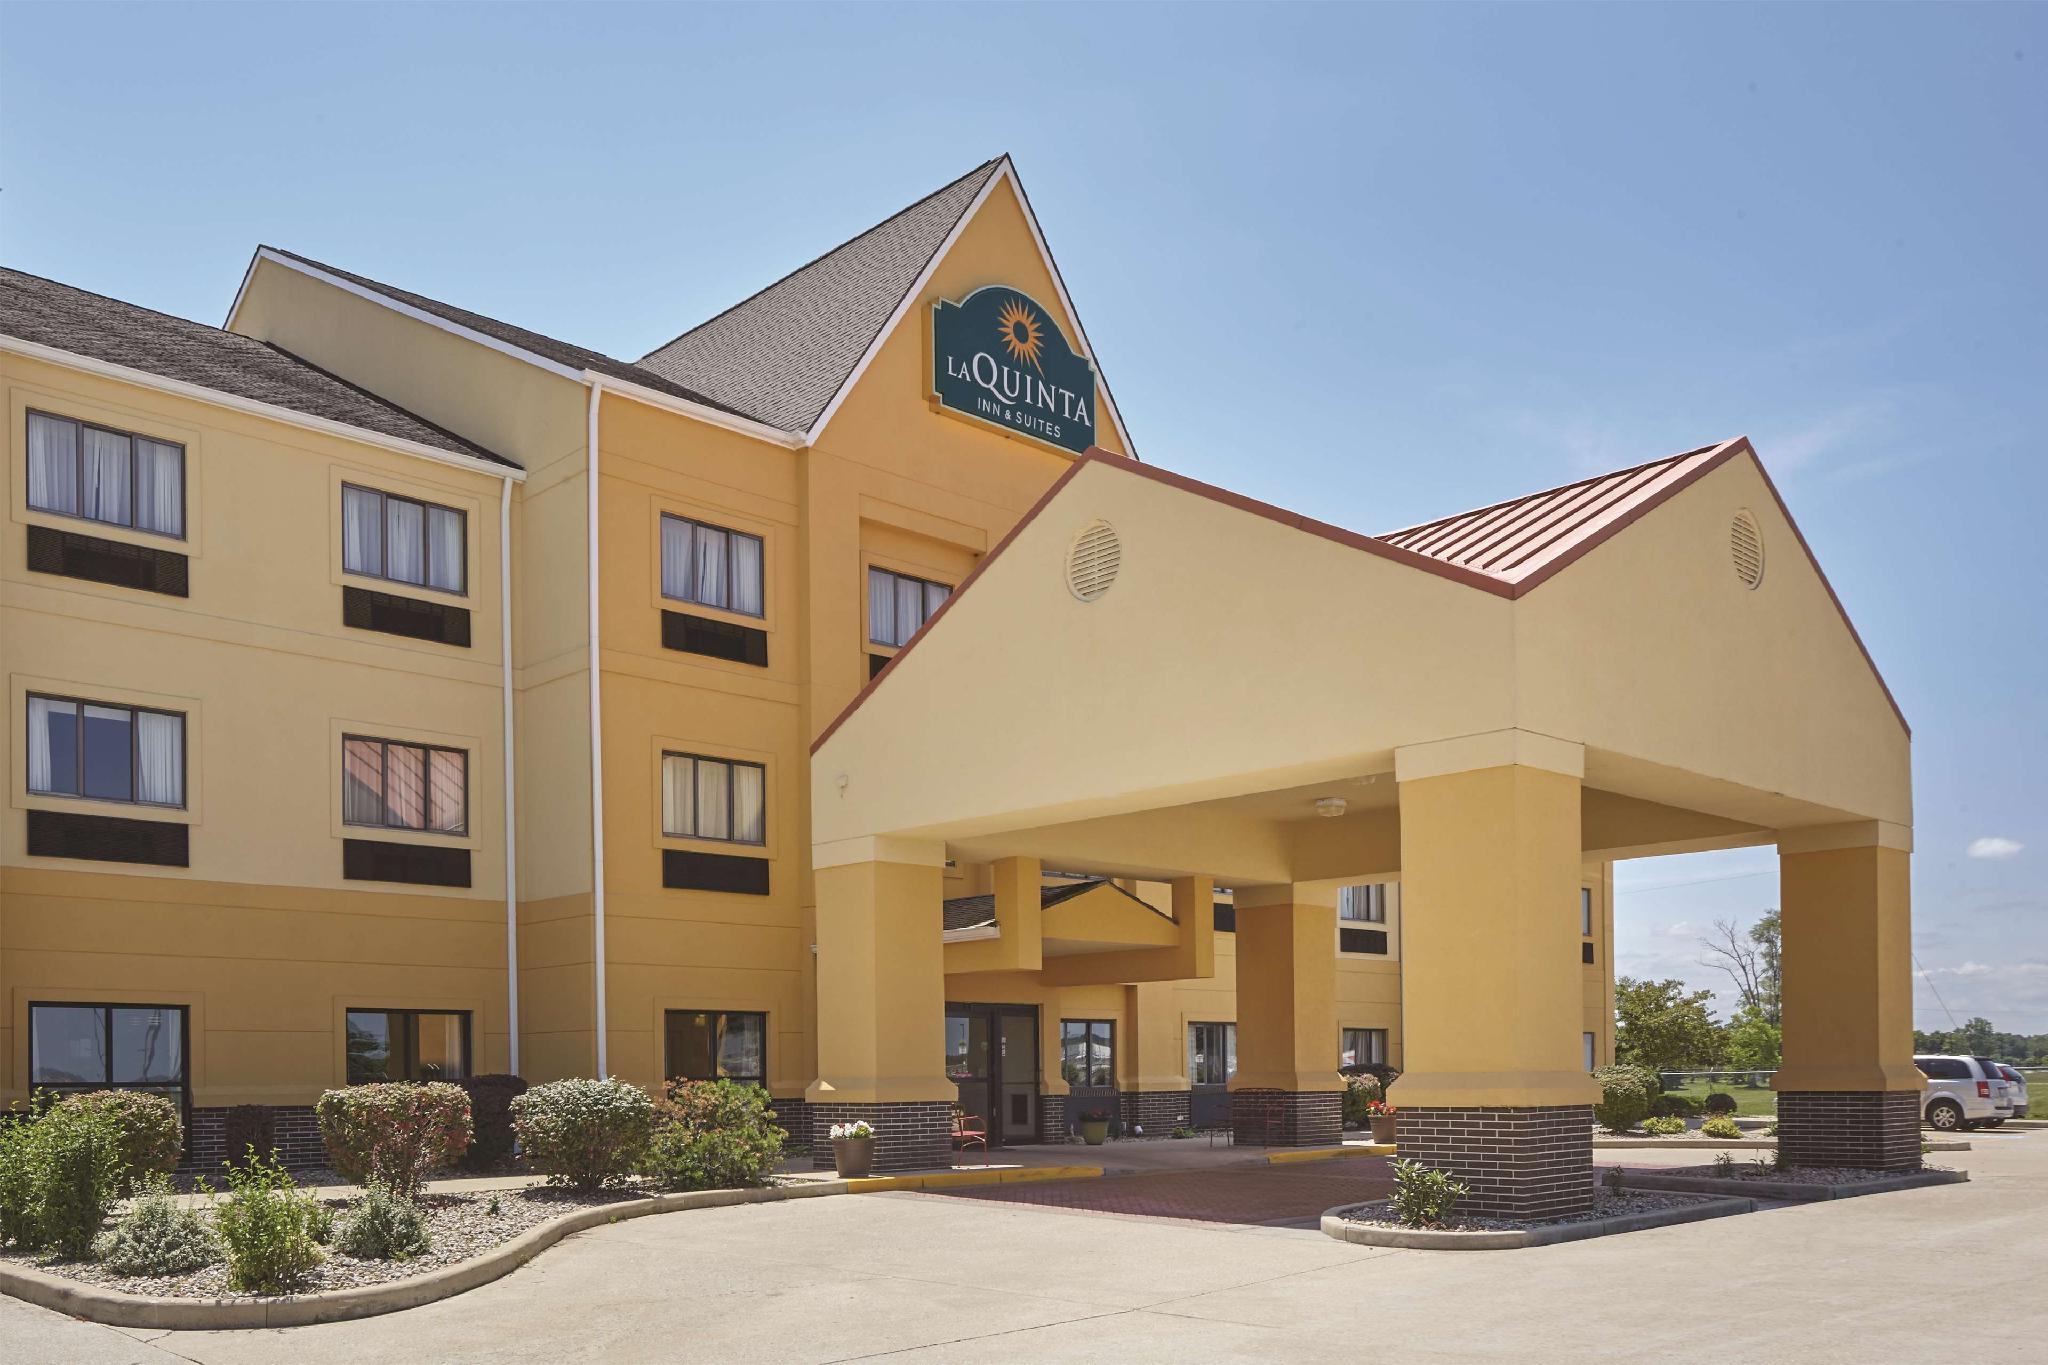 La Quinta Inn And Suites By Wyndham South Bend